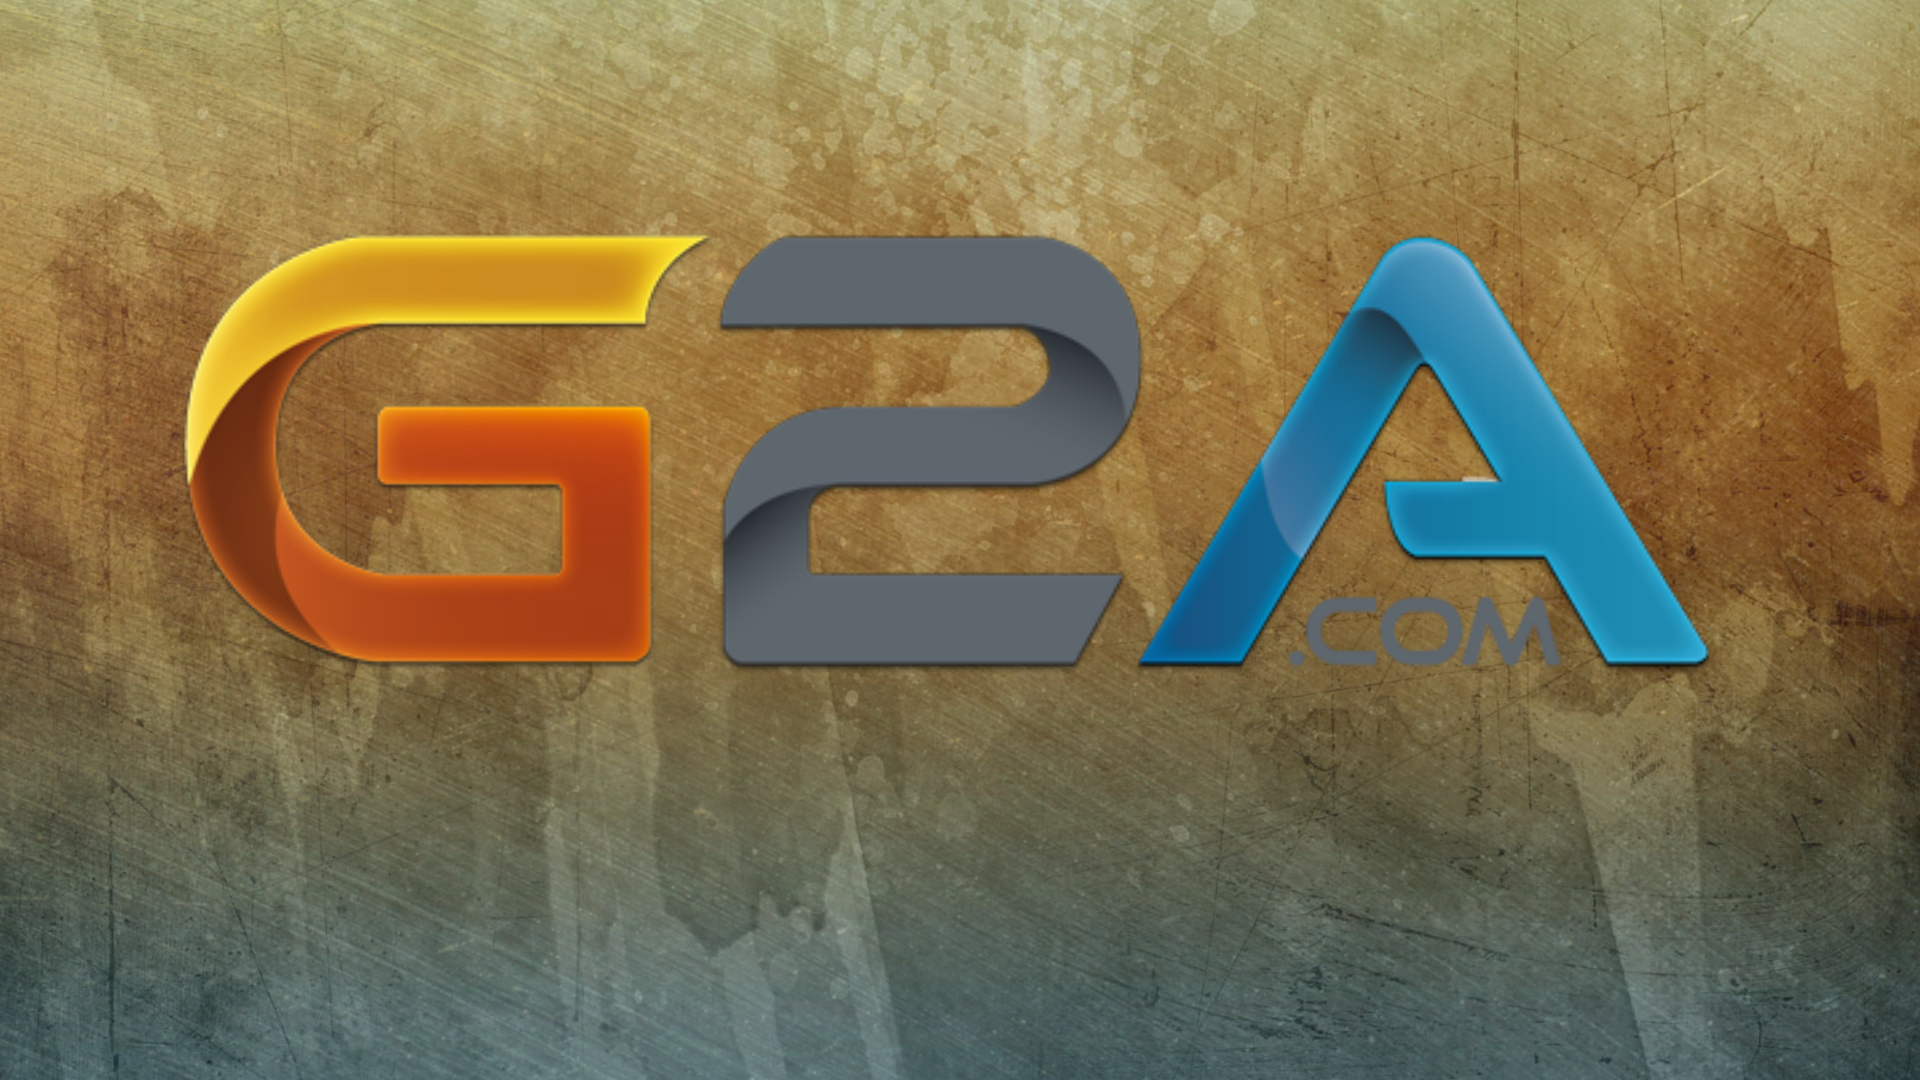 Gearbox Software shocked many with an out of the blue message addressing G2A about their practices and impact on the gaming industry.